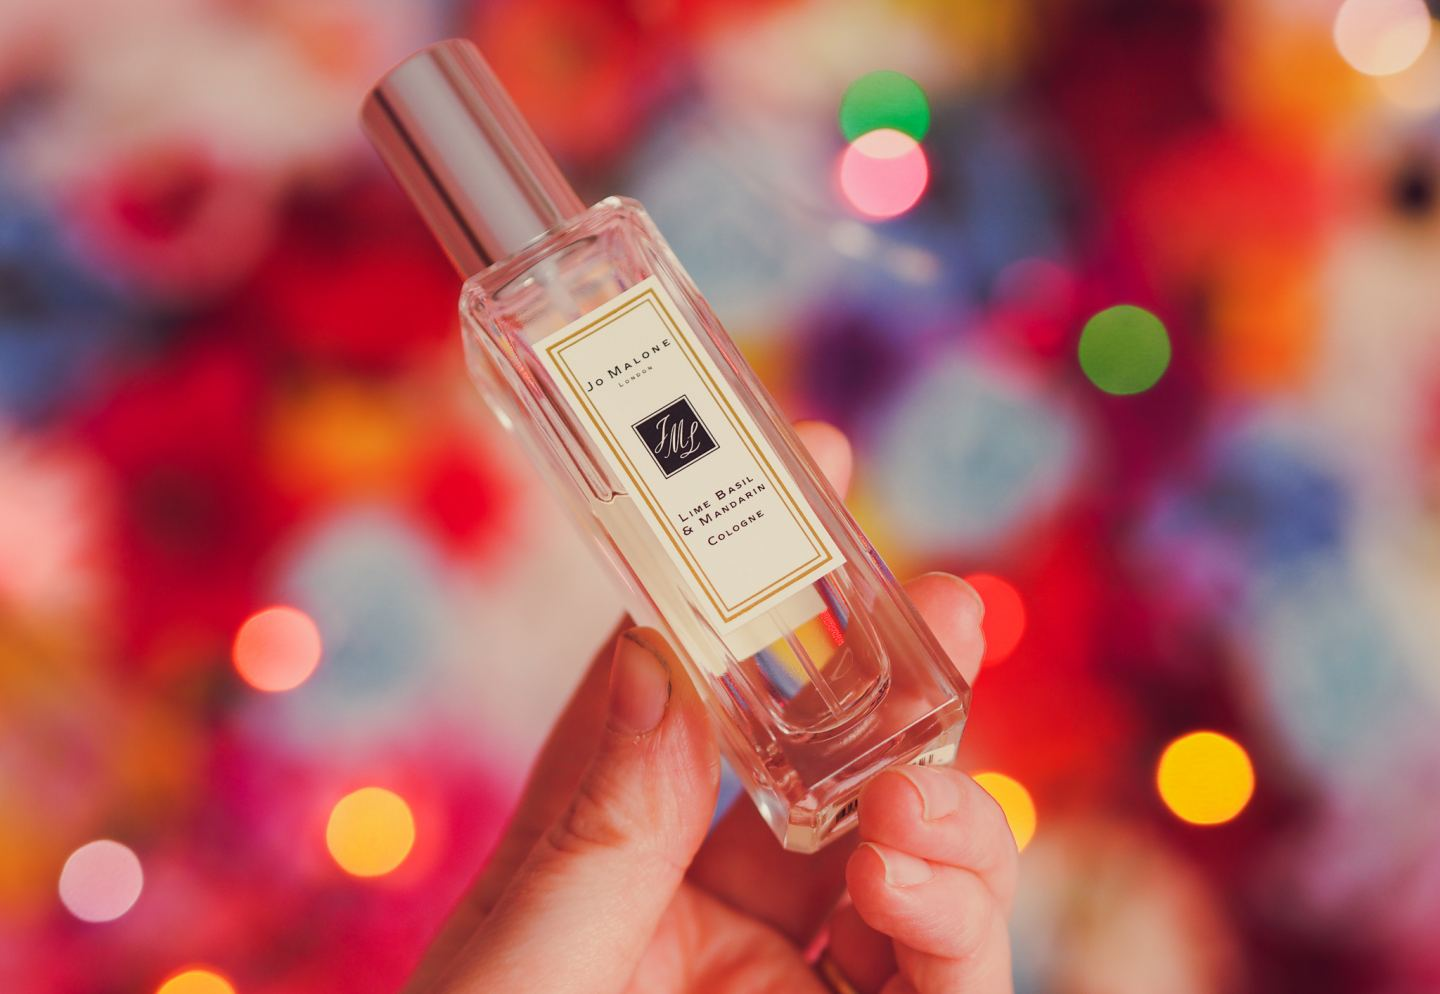 Jo Malone 'Lime, Basil & Mandarin' Review